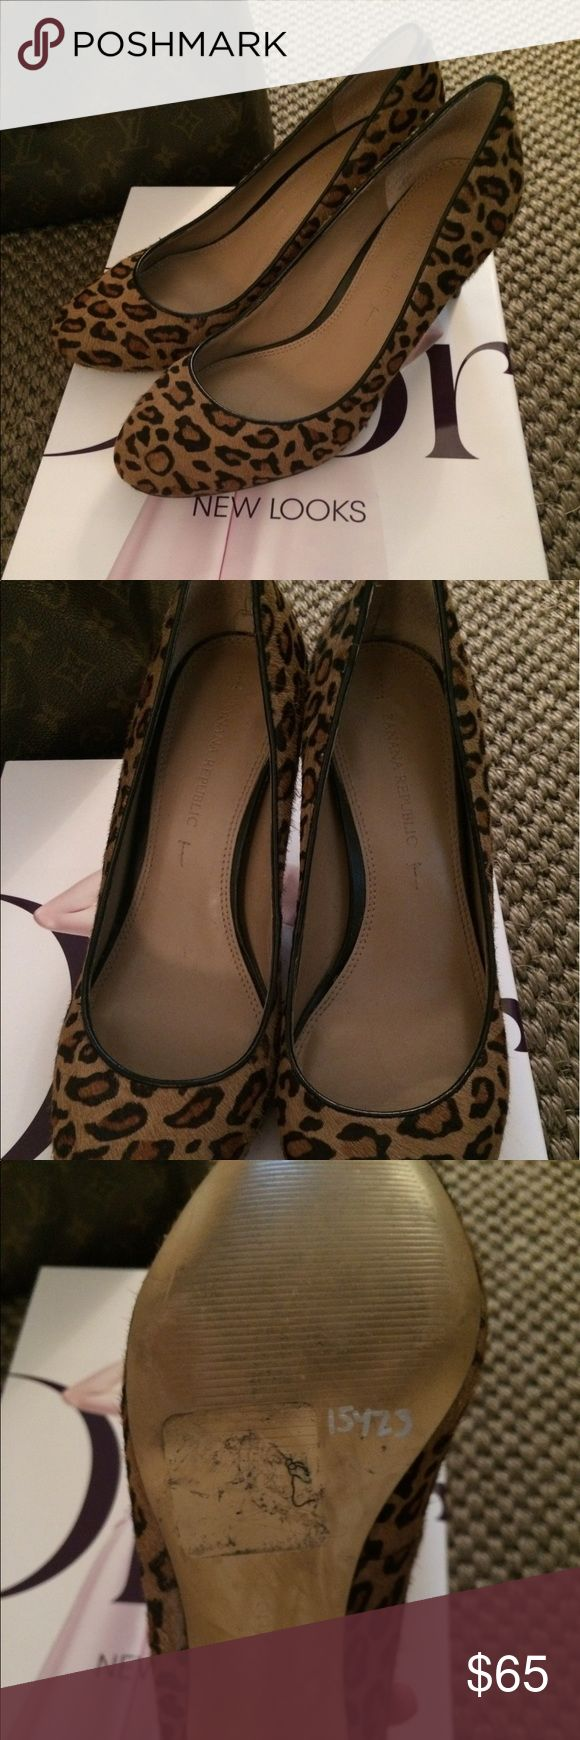 """Banana Republic Leopard Calf Hair Pumps 7.5M! Gorgeous Banana Republic Leopard Calf Hair Pumps Size 7.5M! NO Damage, Some Visible Wear on Soles But Plenty of Life Left! Luxurious Brown Leopard Print with Black Trim, Almond Toe, Leather Footbed, Slim Heel Approximately 2 3/4"""" Banana Republic Shoes Heels"""